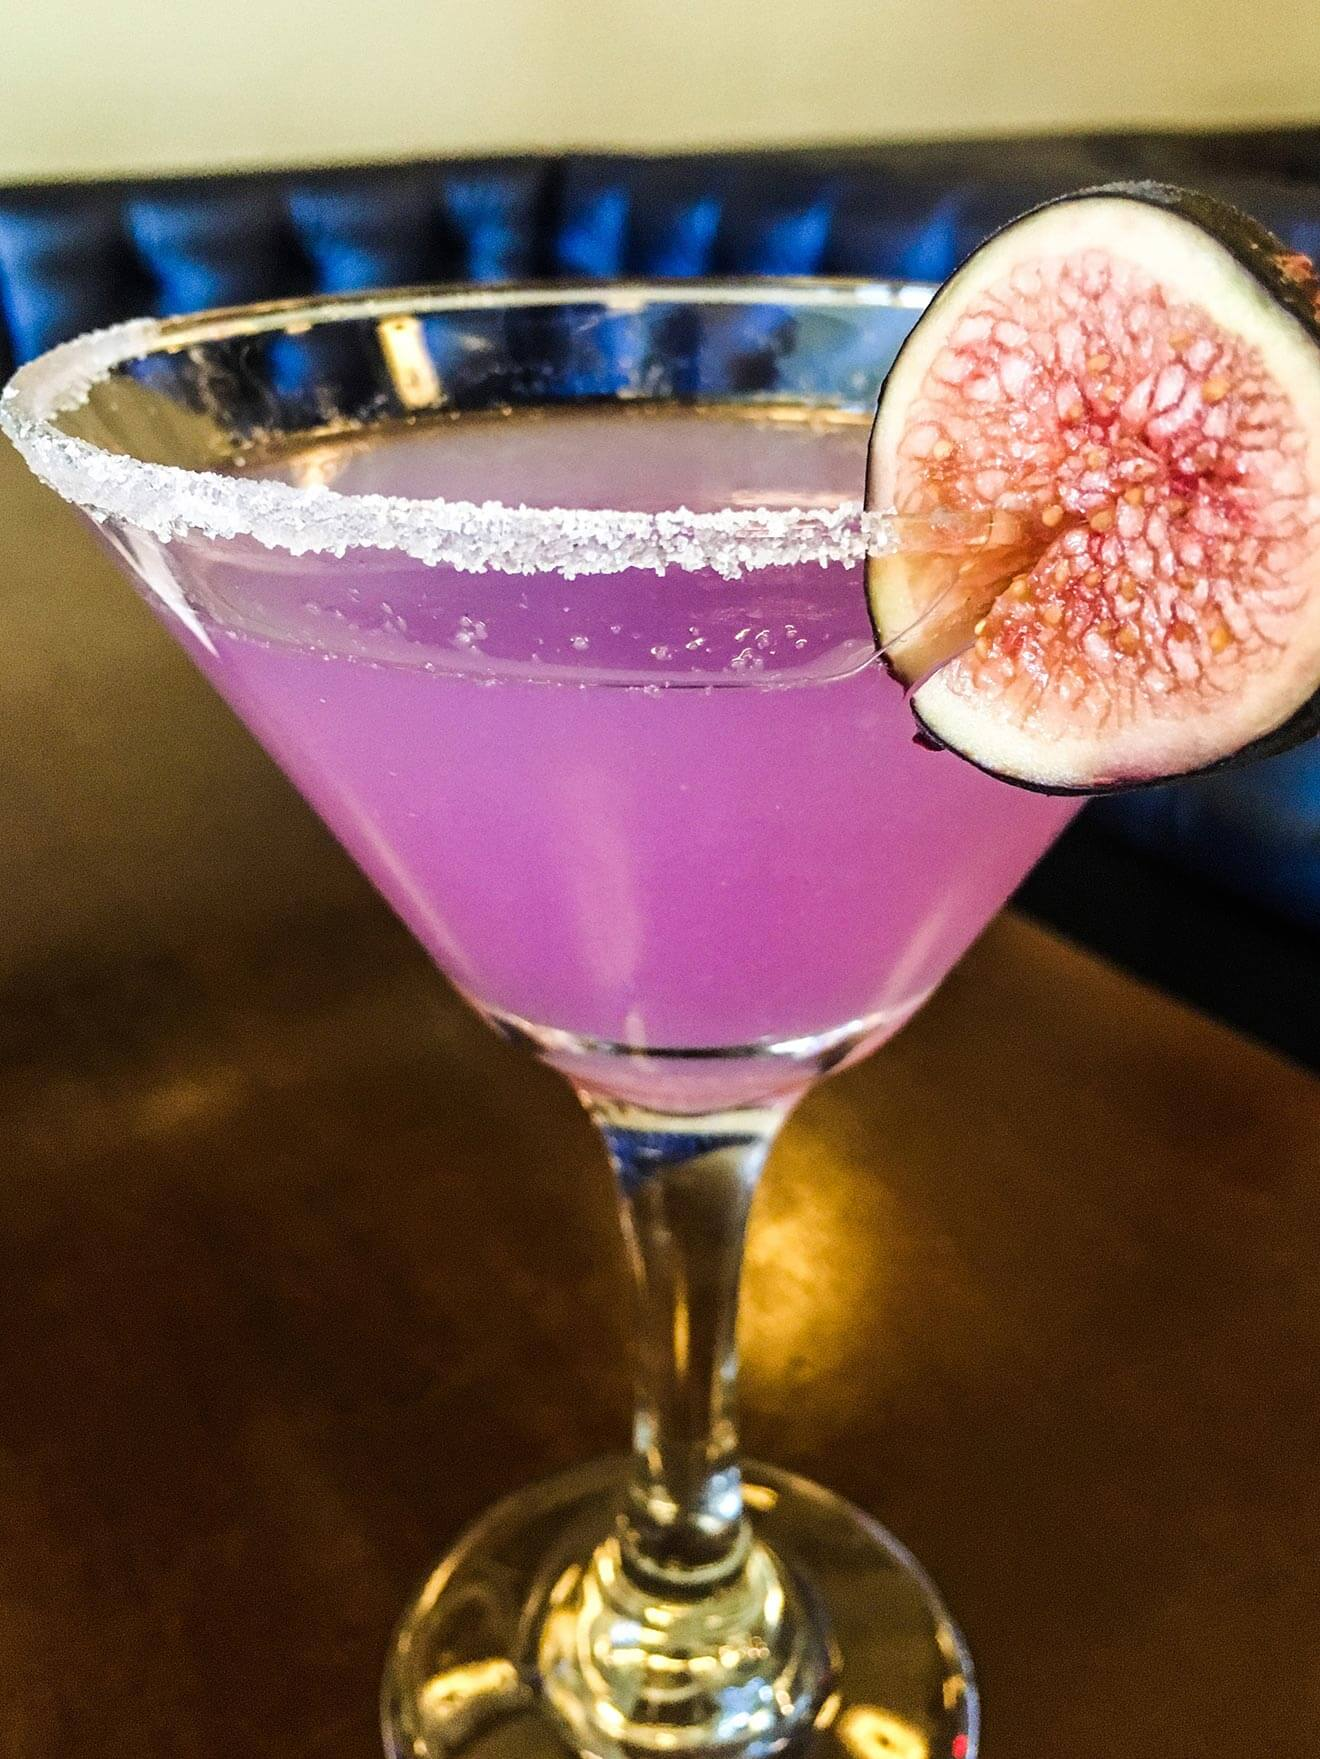 The Violet Cocktail